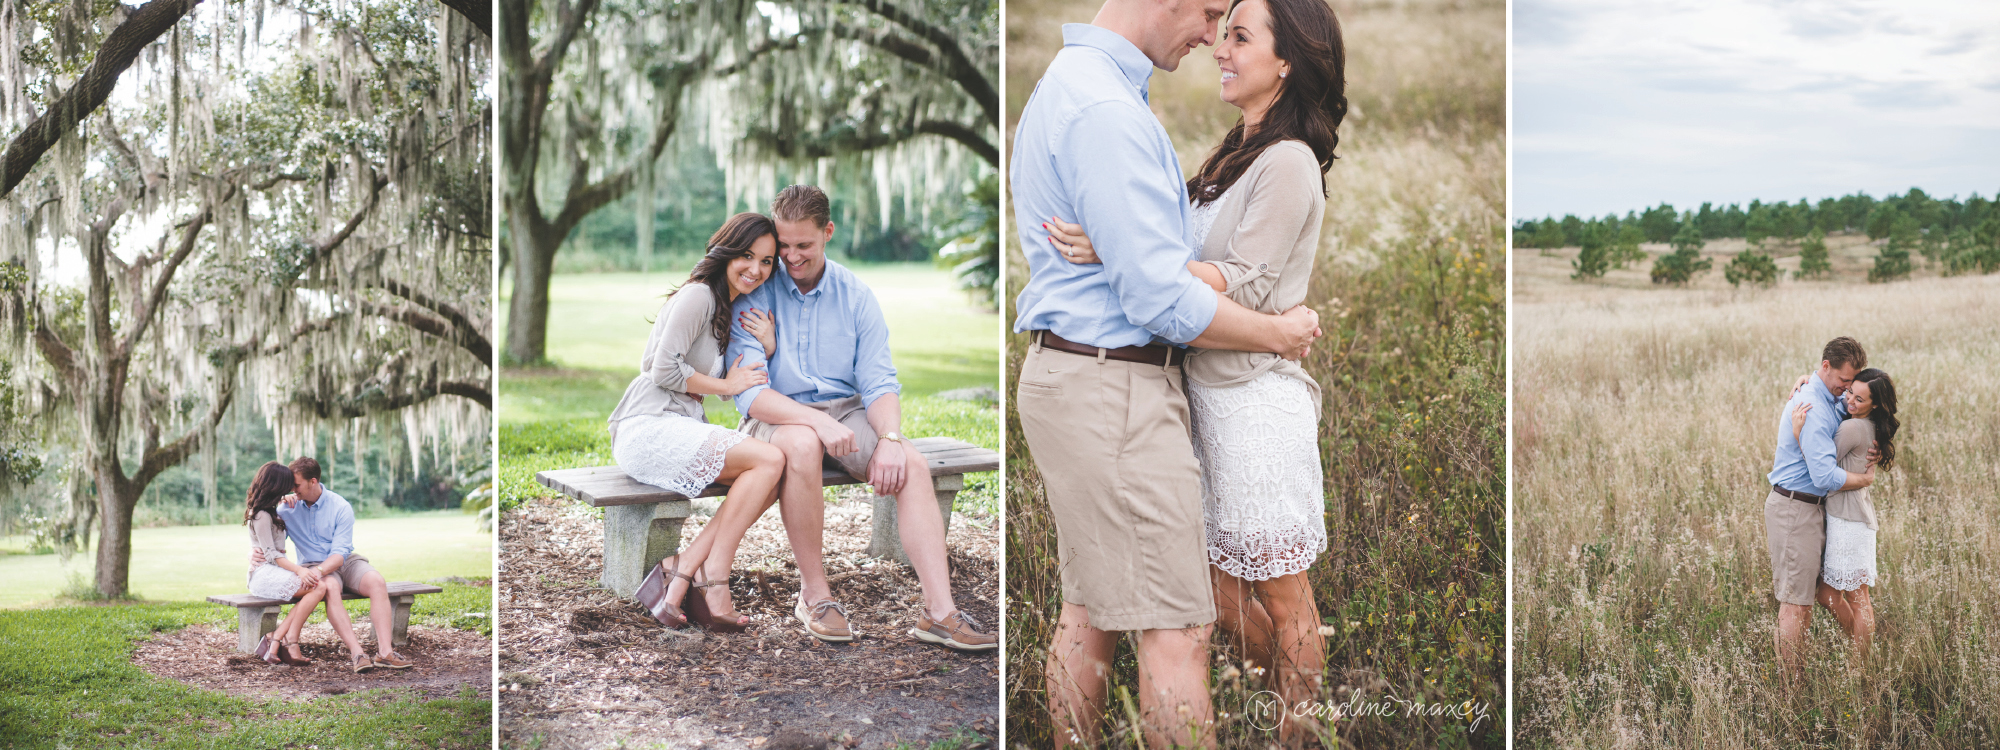 Bok Tower Garden's in Lake Wales, FL Engagement Session with Caroline Maxcy Photography